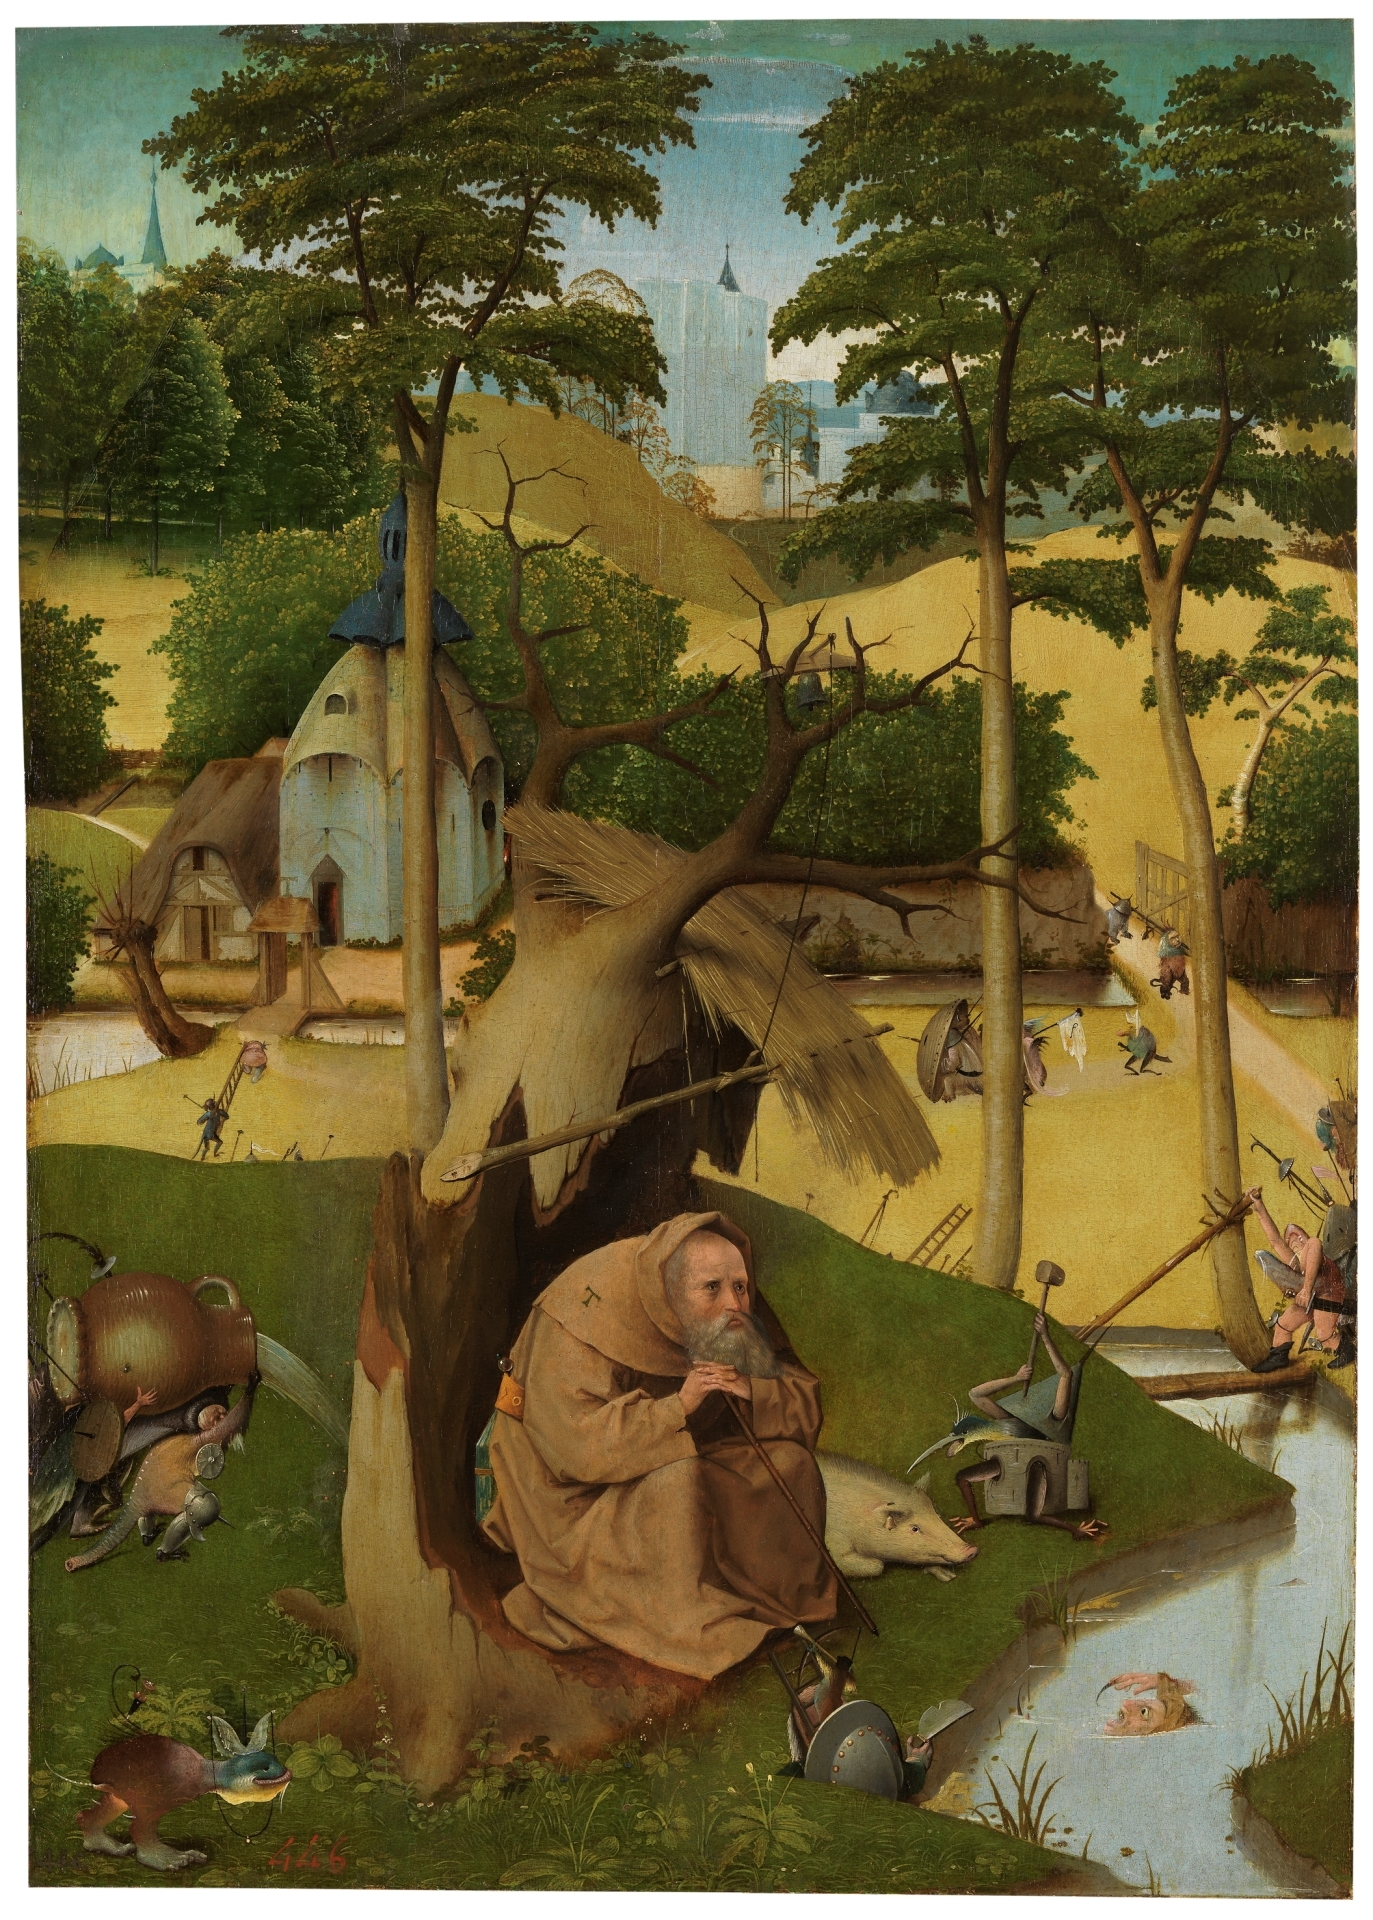 The Temptations of Saint Anthony -BOSCH, HIERONYMUS  Museo Nacional del Prado  ©   By the end of his life, Anthony learned to co-exist with the demons.